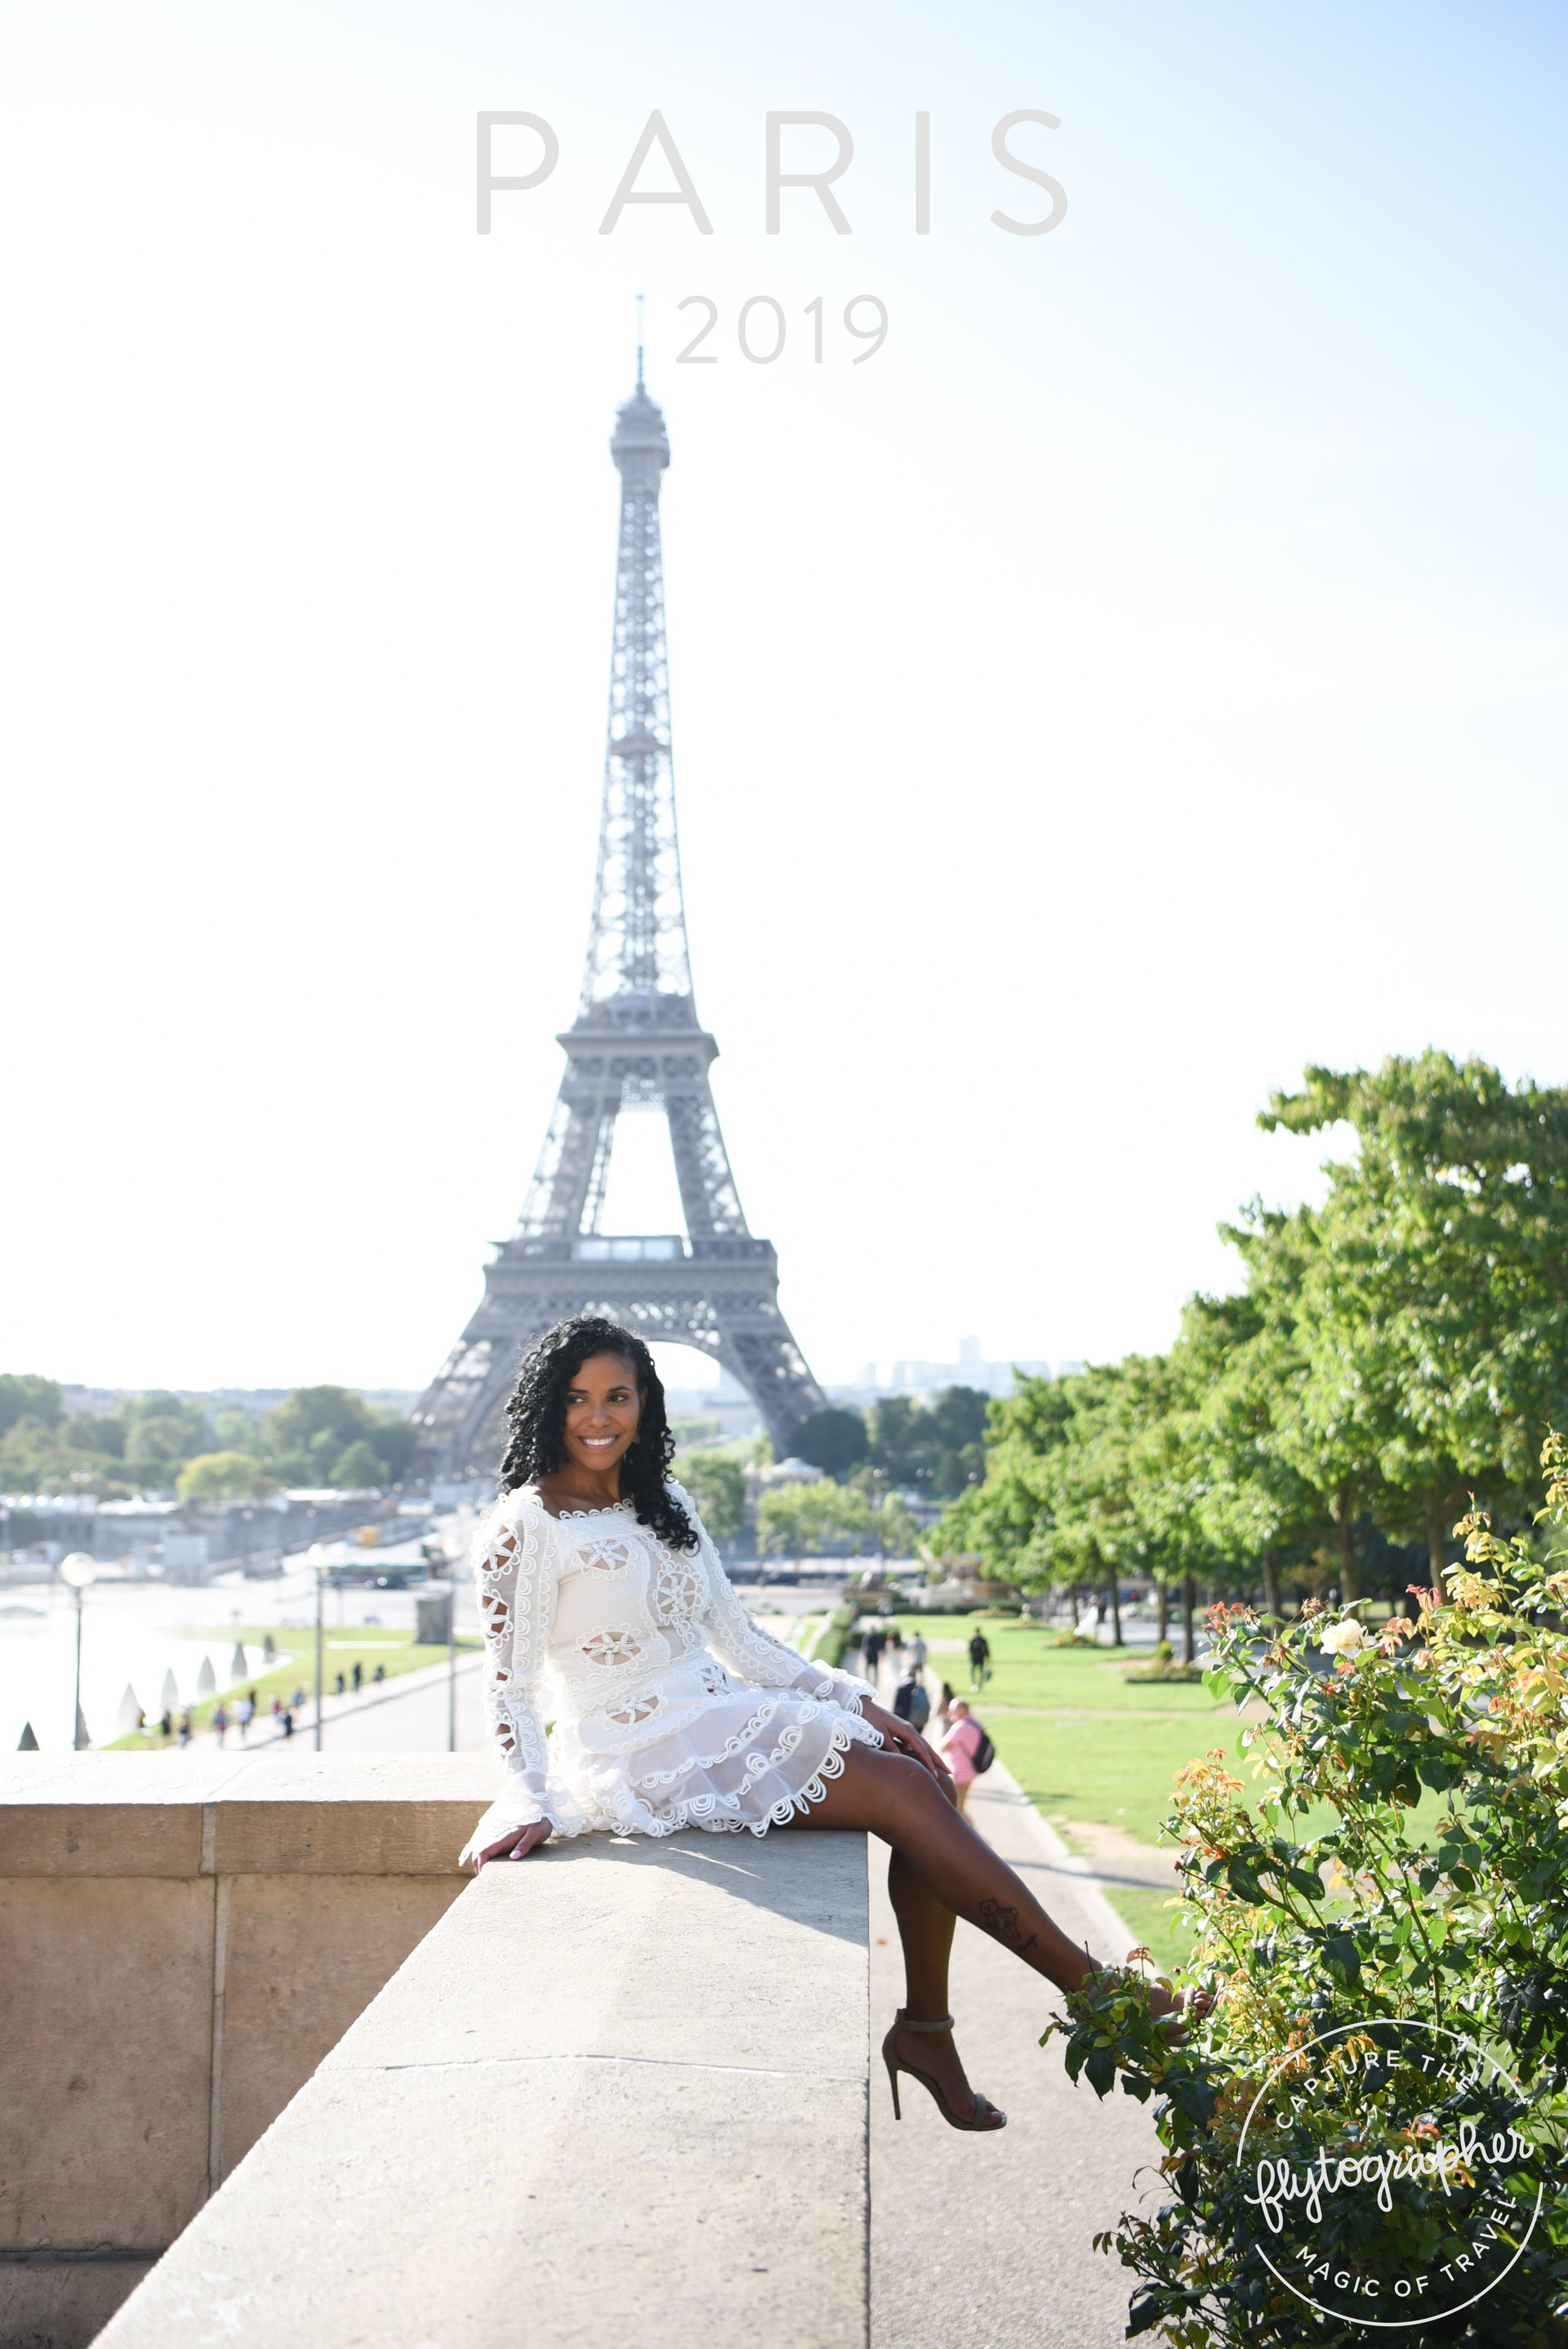 Flytographer Travel Story - Just a girl in Paris